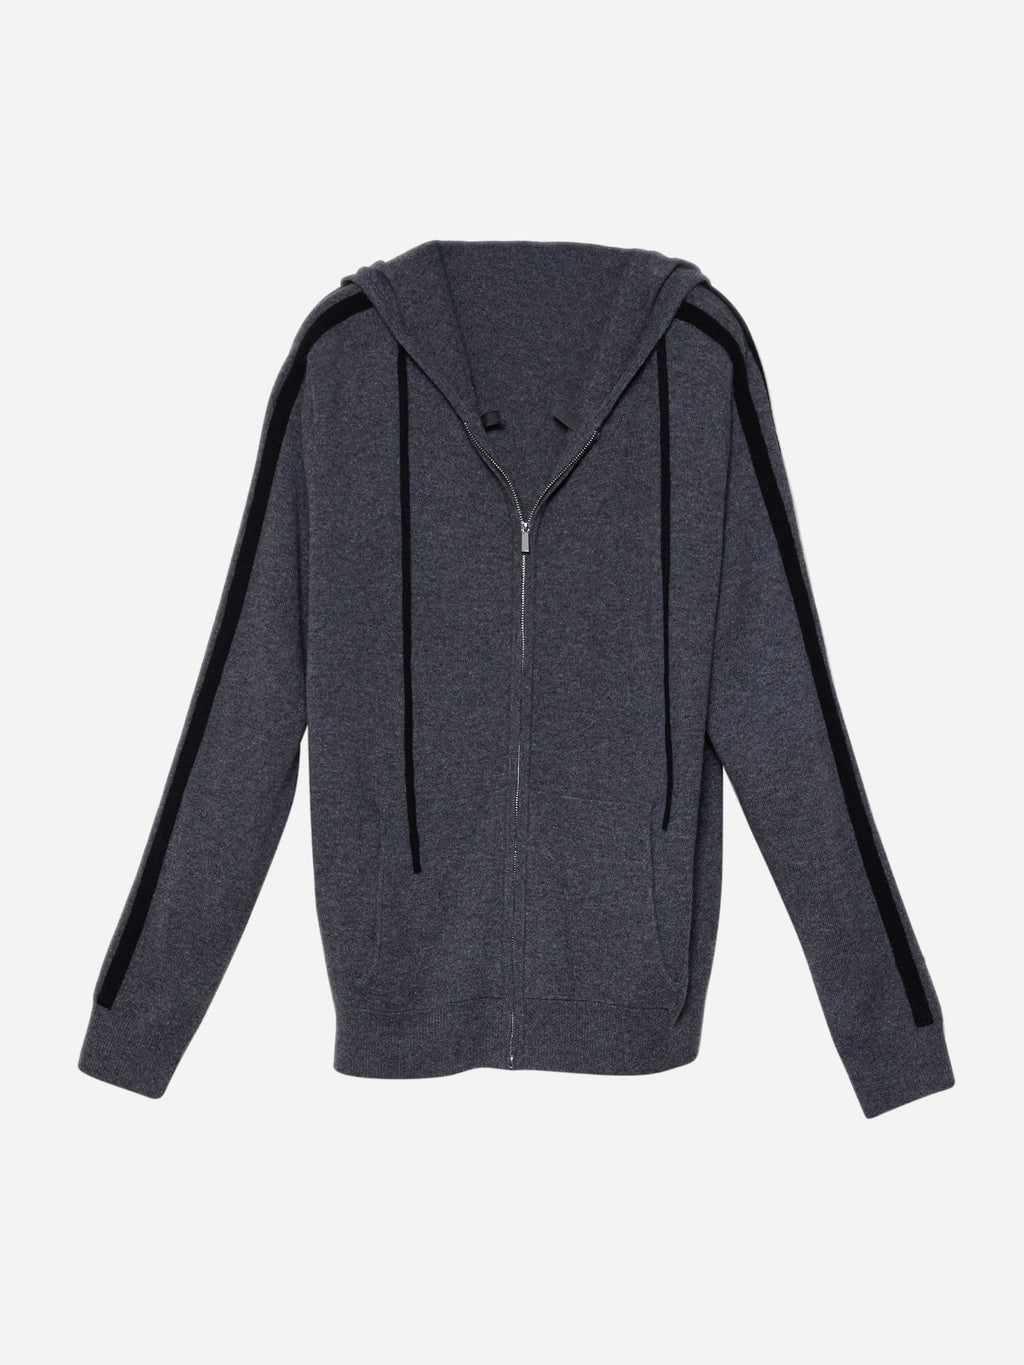 Men's Long Sleeve Zip-Through Cashmere Hoodie with Drawstring